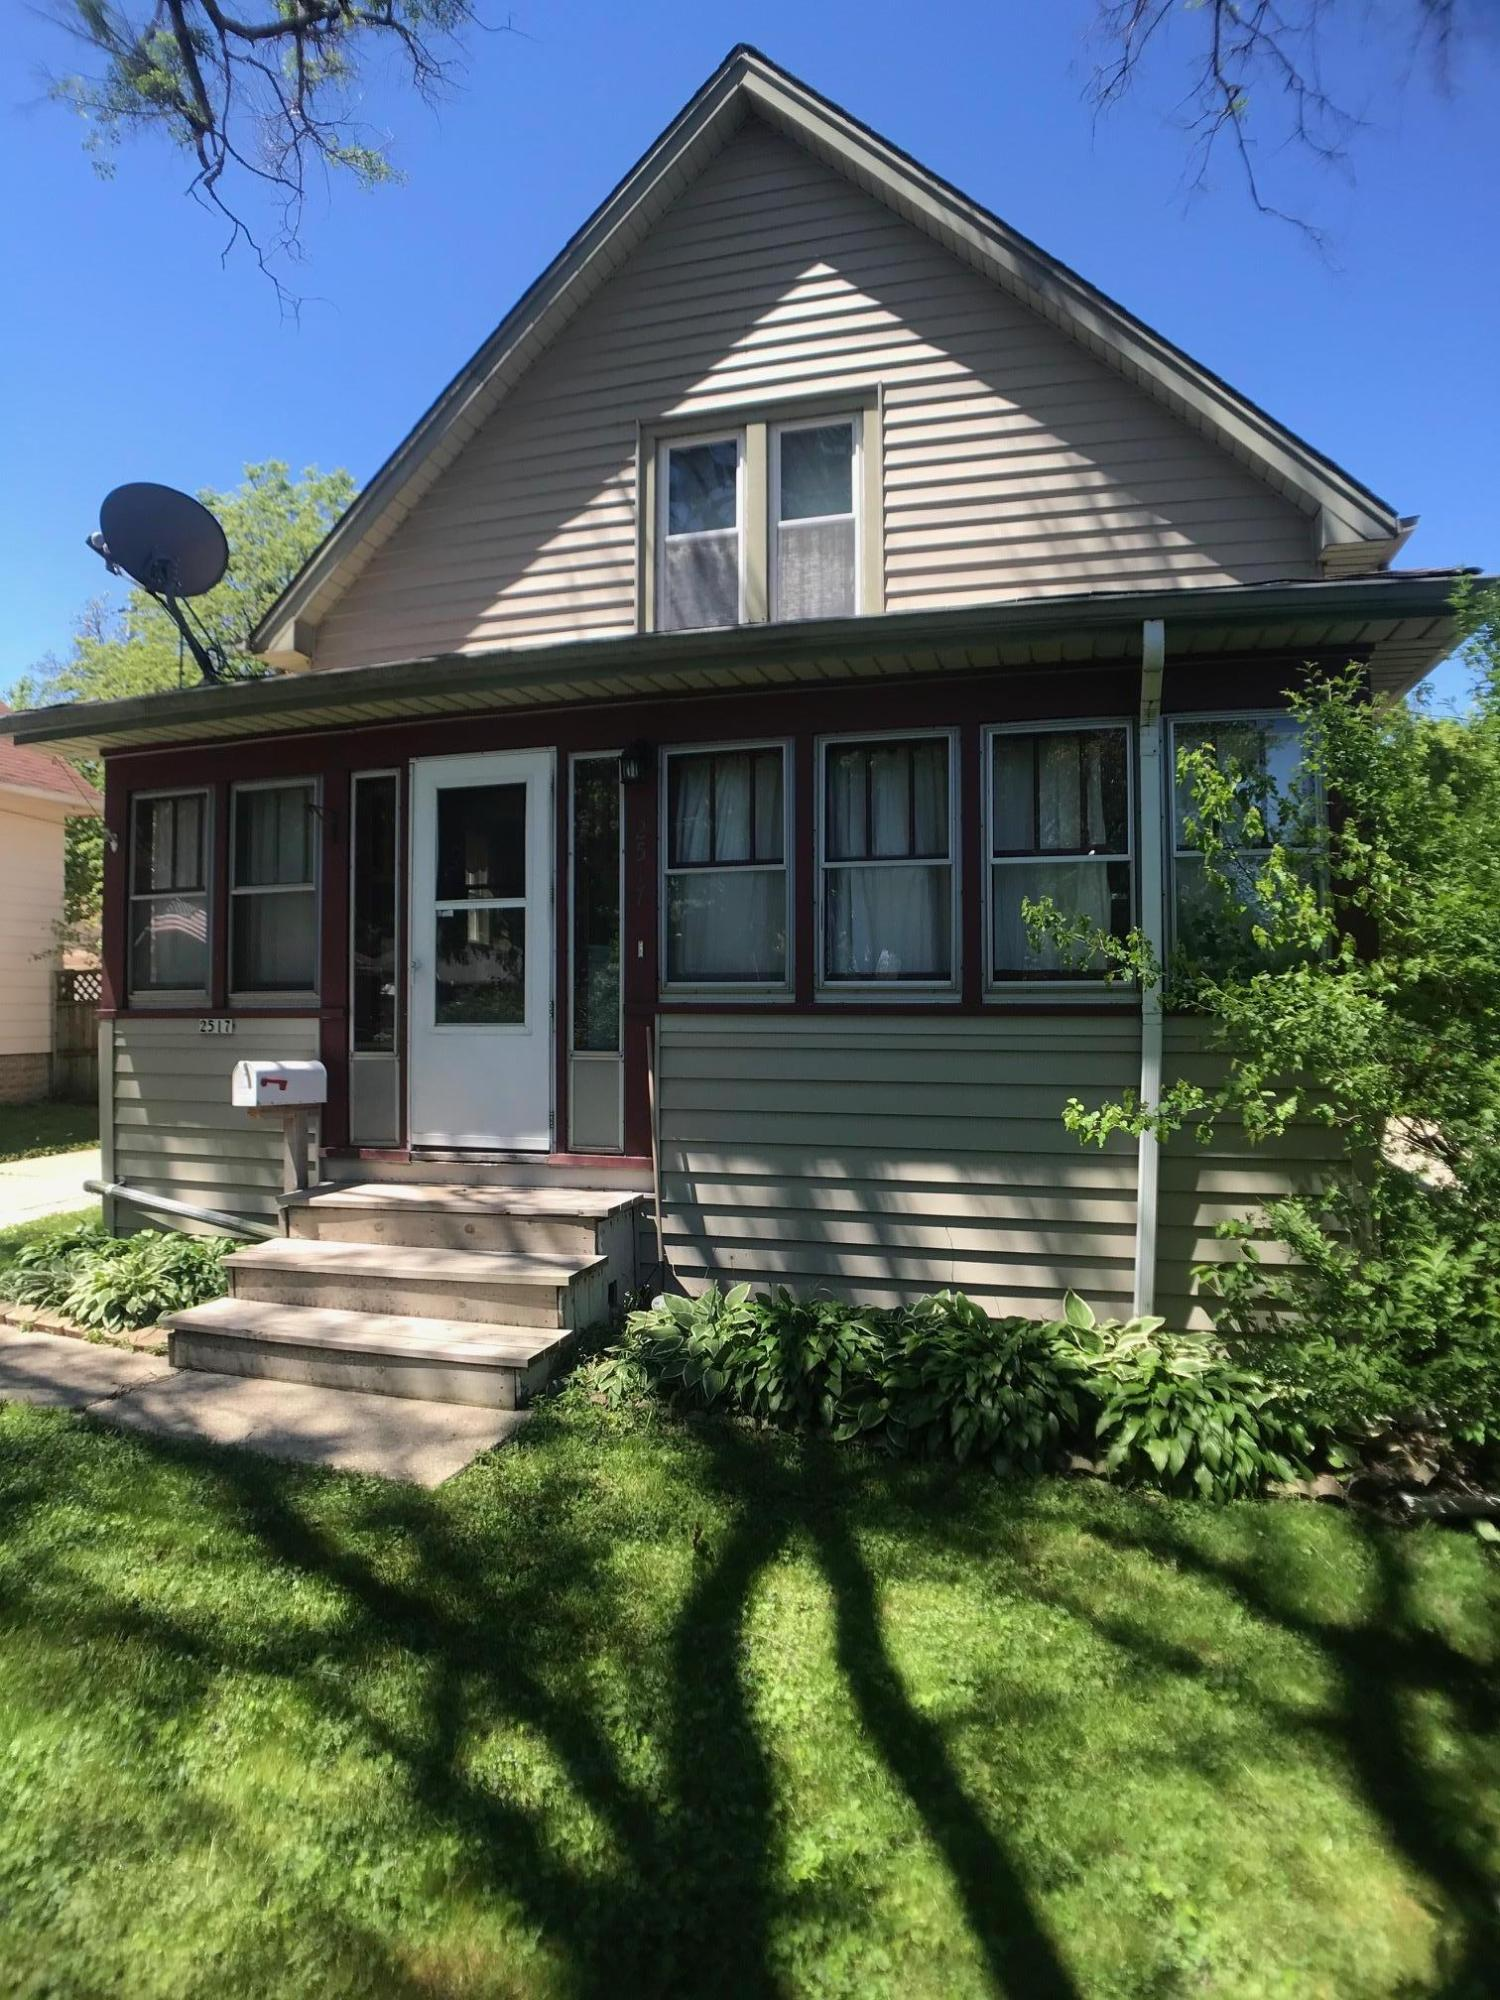 2517 69th St, Milwaukee, Wisconsin 53219, 3 Bedrooms Bedrooms, ,2 BathroomsBathrooms,Single-Family,For Sale,69th St,1691381